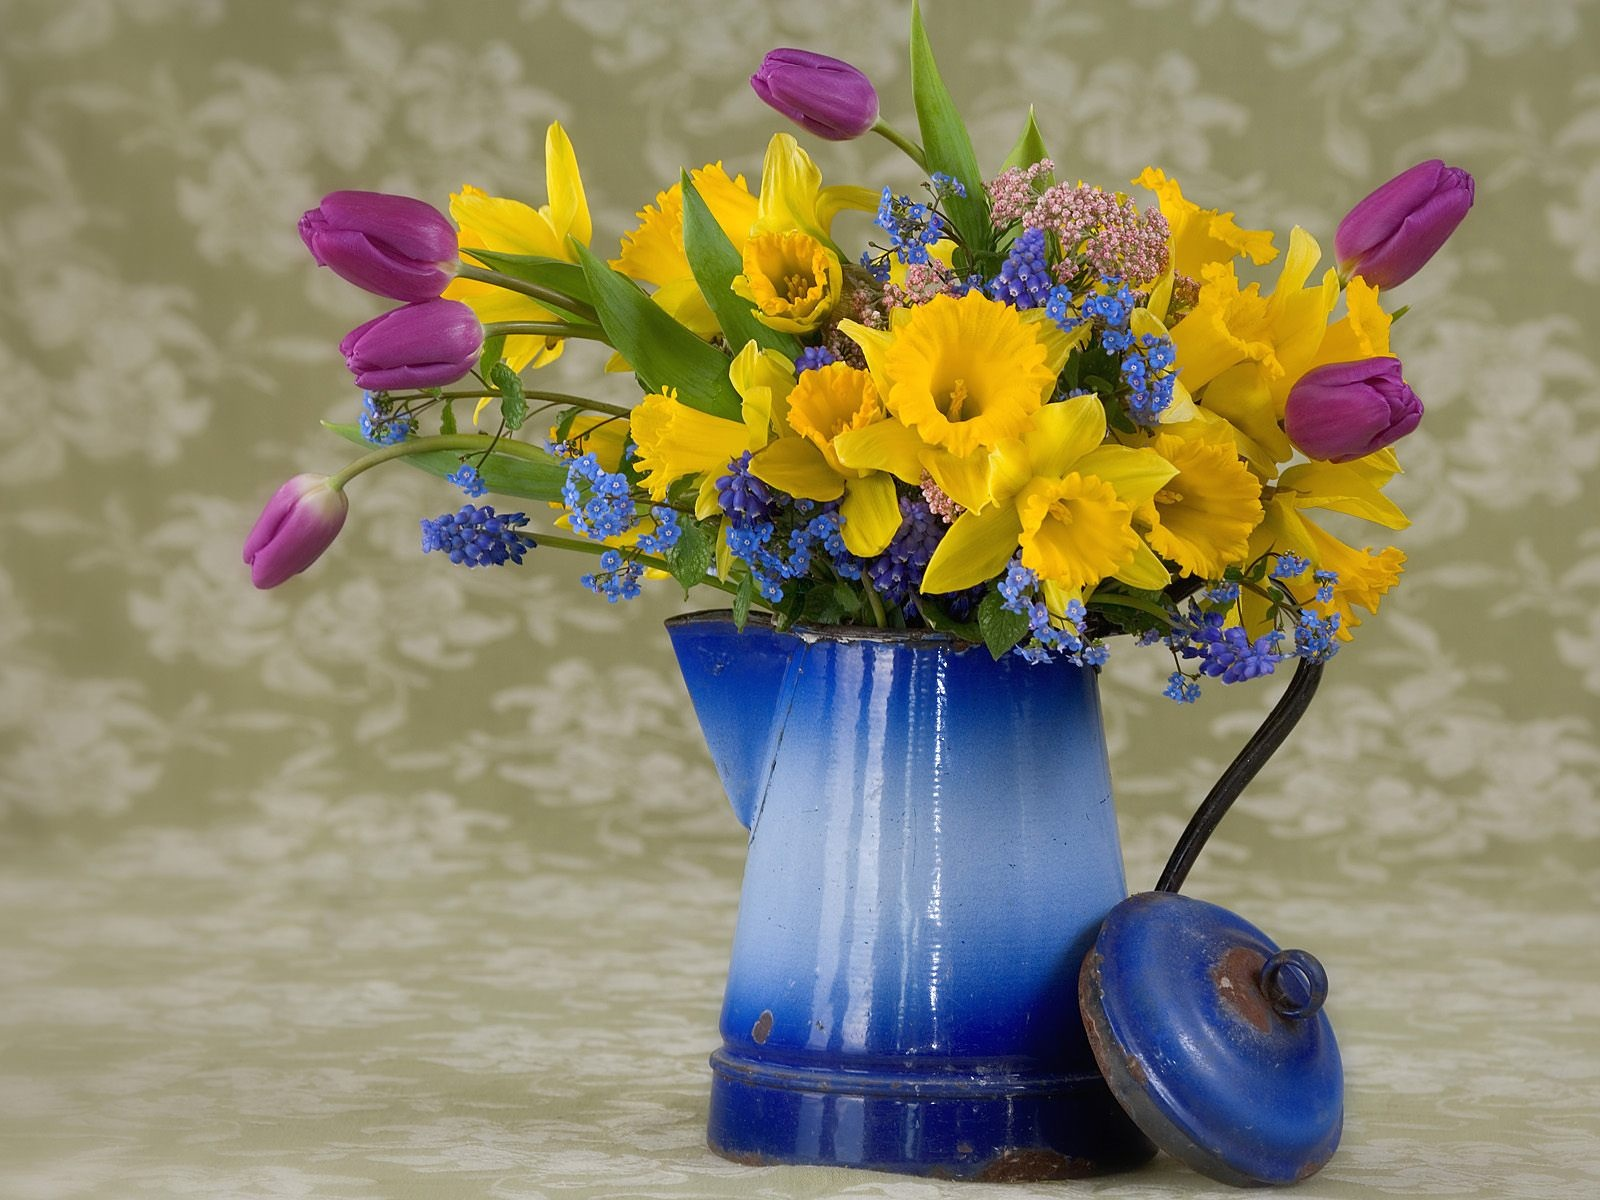 flower spring flower arrangements beautiful image download flower 1600x1200